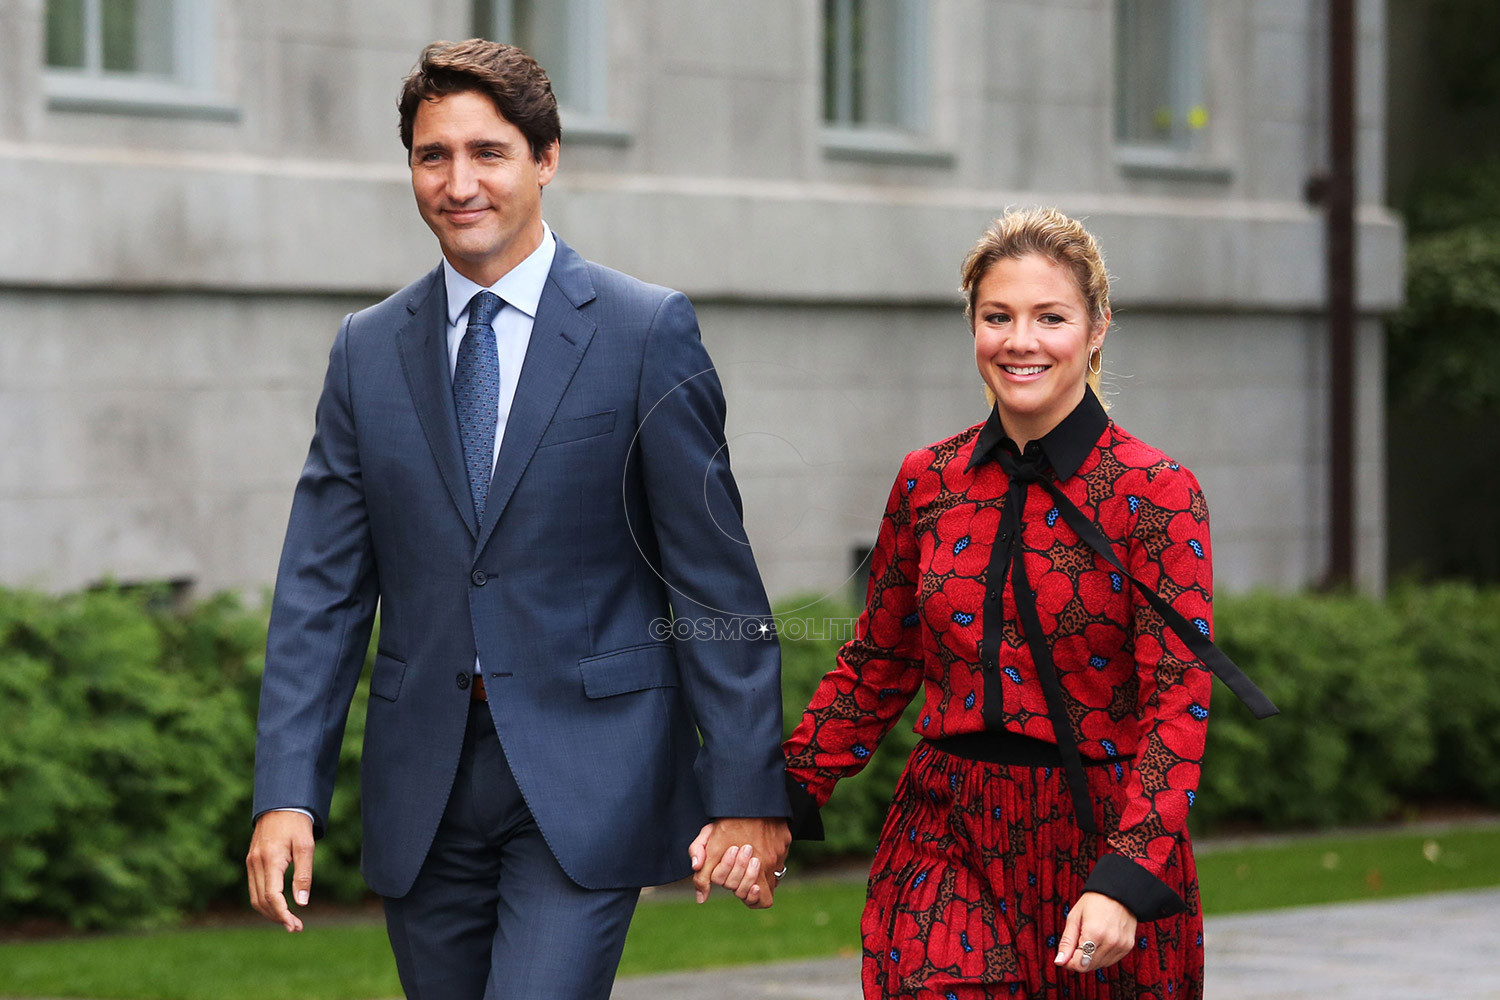 Canada's Prime Minister Justin Trudeau and his wife Sophie Gregorie Trudeau arrives at Rideau Hall in Ottawa on September 11, 2019. - Trudeau will officially kick off what is set to be a grueling campaign for a second term as he takes on surging rivals in Canada's October 21 national elections. (Photo by Dave Chan / AFP) (Photo credit should read DAVE CHAN/AFP via Getty Images)